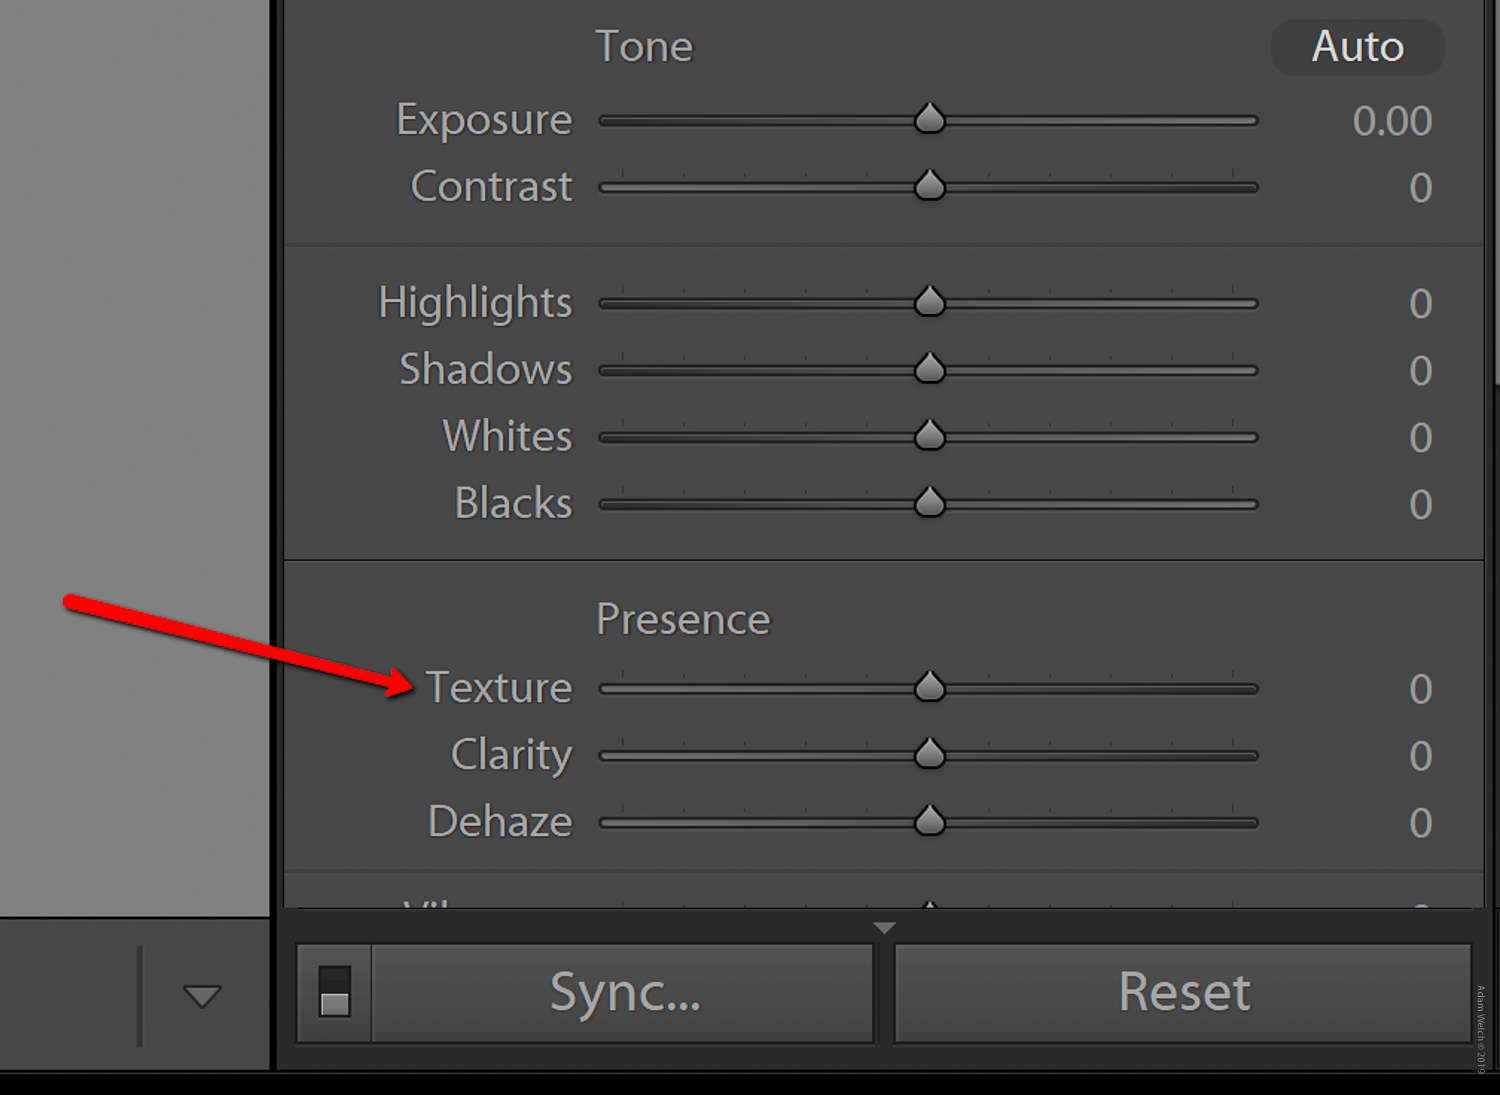 Texture and Clarity Sliders in Lightroom Classic CC: What's the difference?